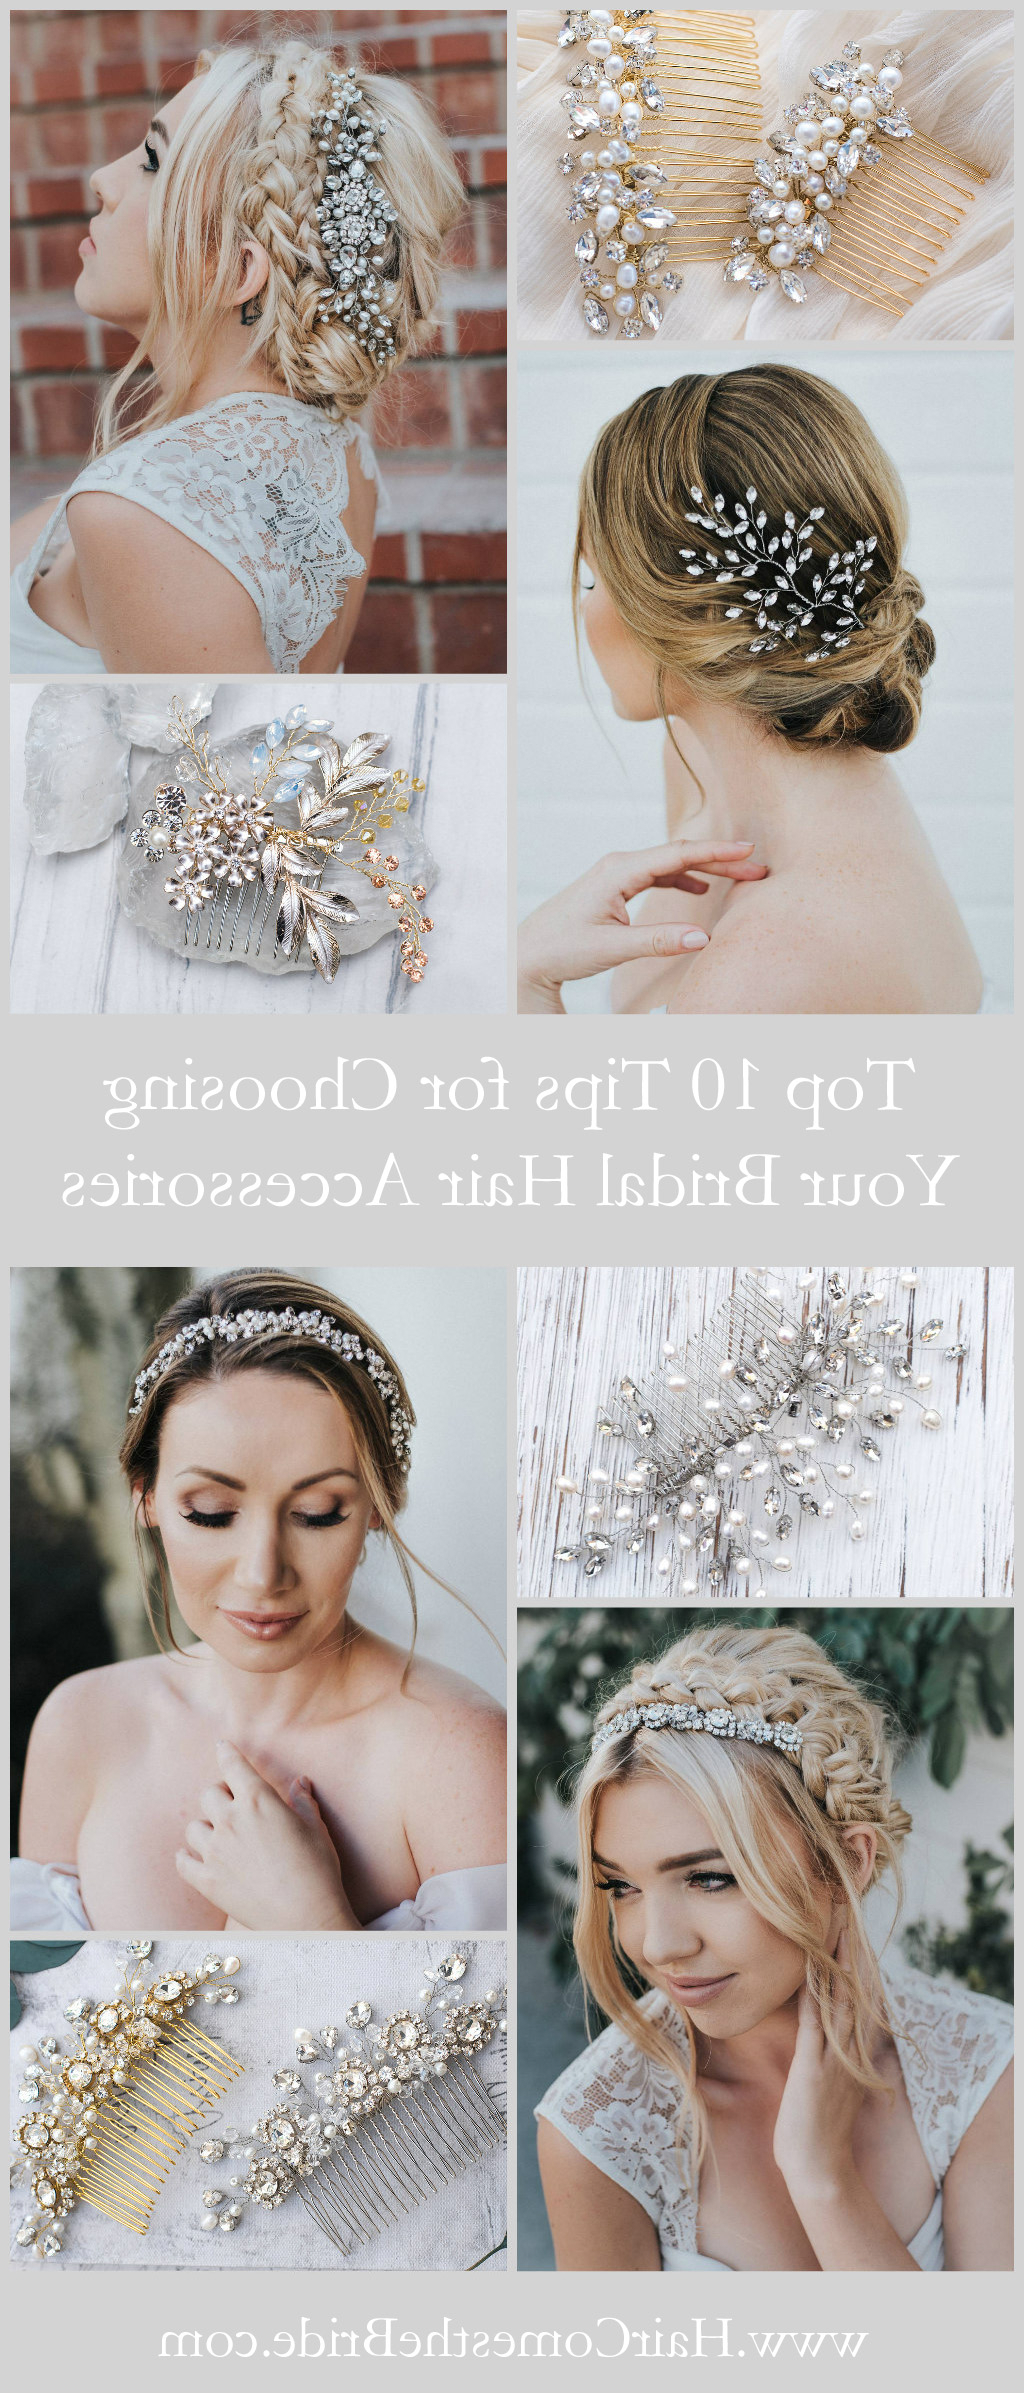 Top 10 Tips For Choosing Your Bridal Hair Accessories – Hair Comes Intended For Most Popular High Updos With Jeweled Headband For Brides (View 19 of 20)